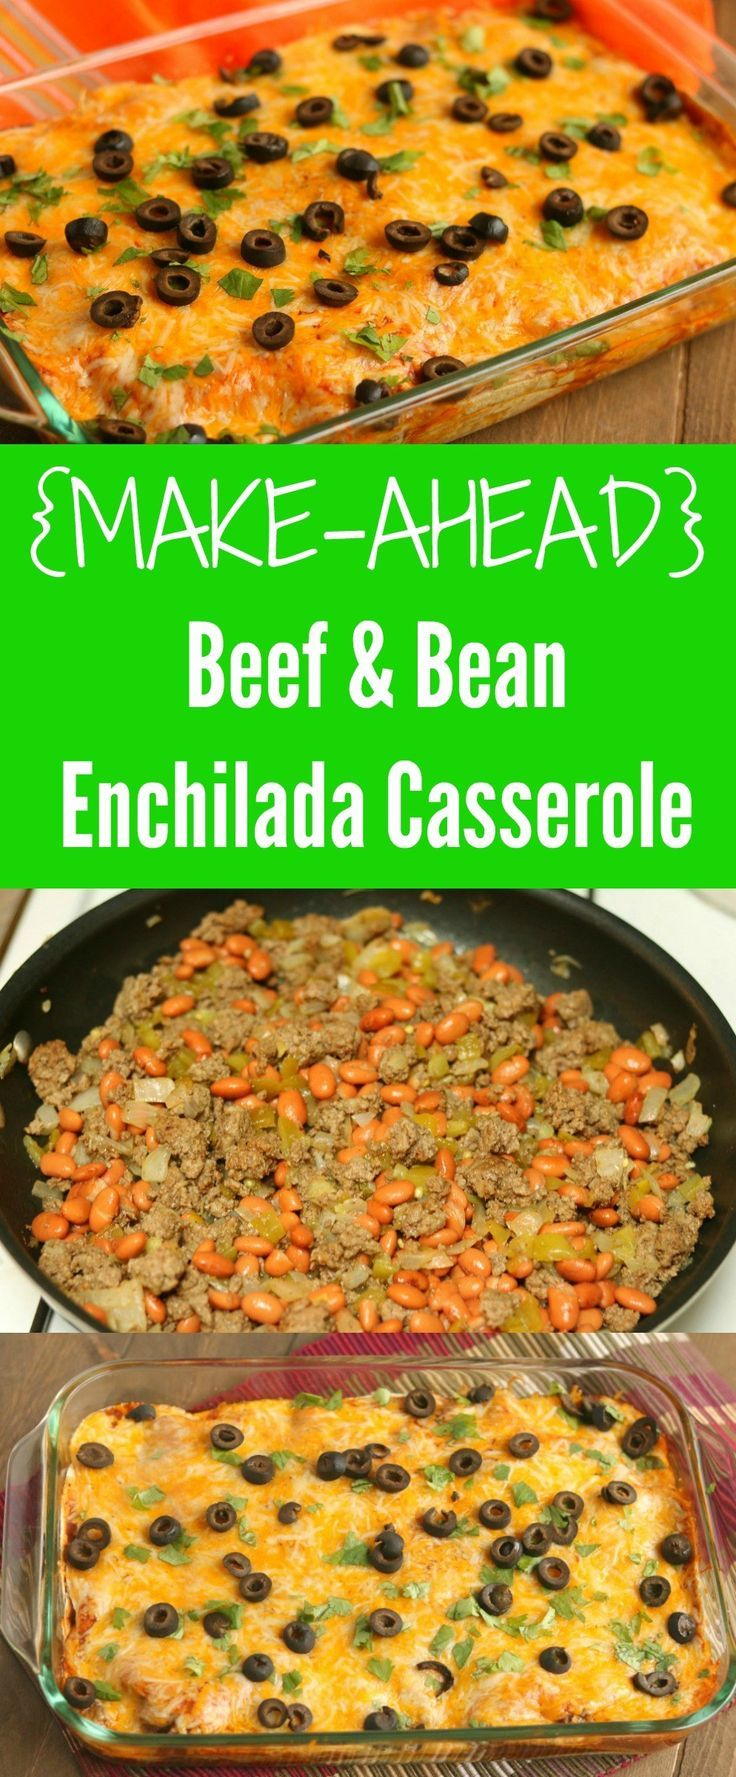 beef-and-bean-enchilada-casserole #ad via http://www.chocolateslopes.com